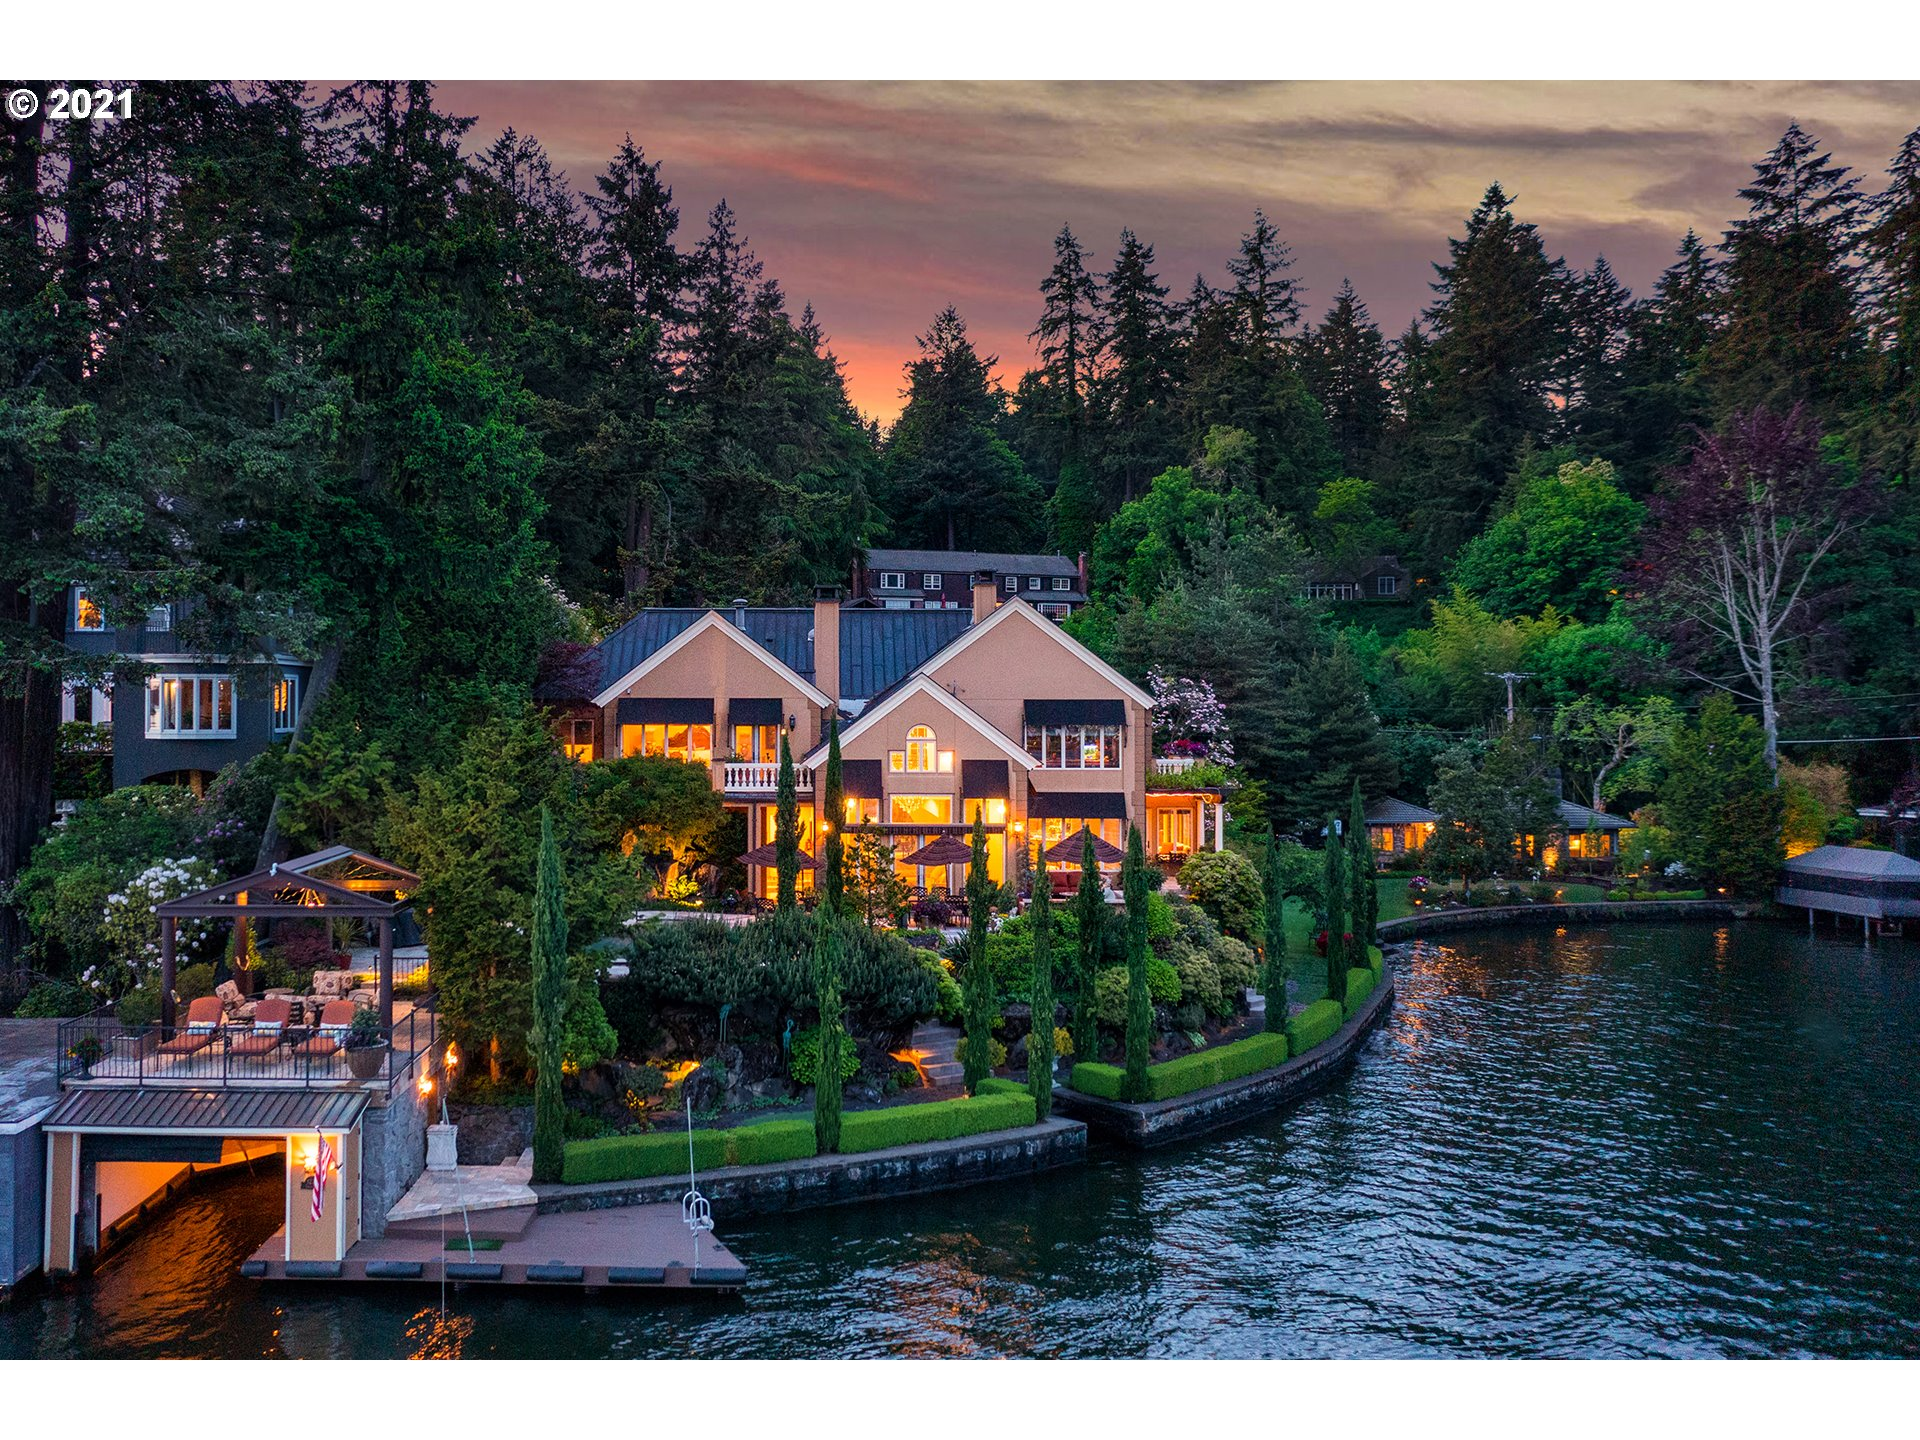 Every day is a vacation at your private 5-star resort on .5+ acre & 330 ft of lushly landscaped, prime water-front on Oswego Lake. Relax & entertain on the poolside patio & perfect your short game on the putting green steps from the water. Enjoy extraordinary European-inspired luxury design with sumptuous details & lavish amenities. Separate guest house perfect for visitors or multi-generational living. Enclosed boat house with water-level deck & dock. Gated property in LOs coveted North Shore.